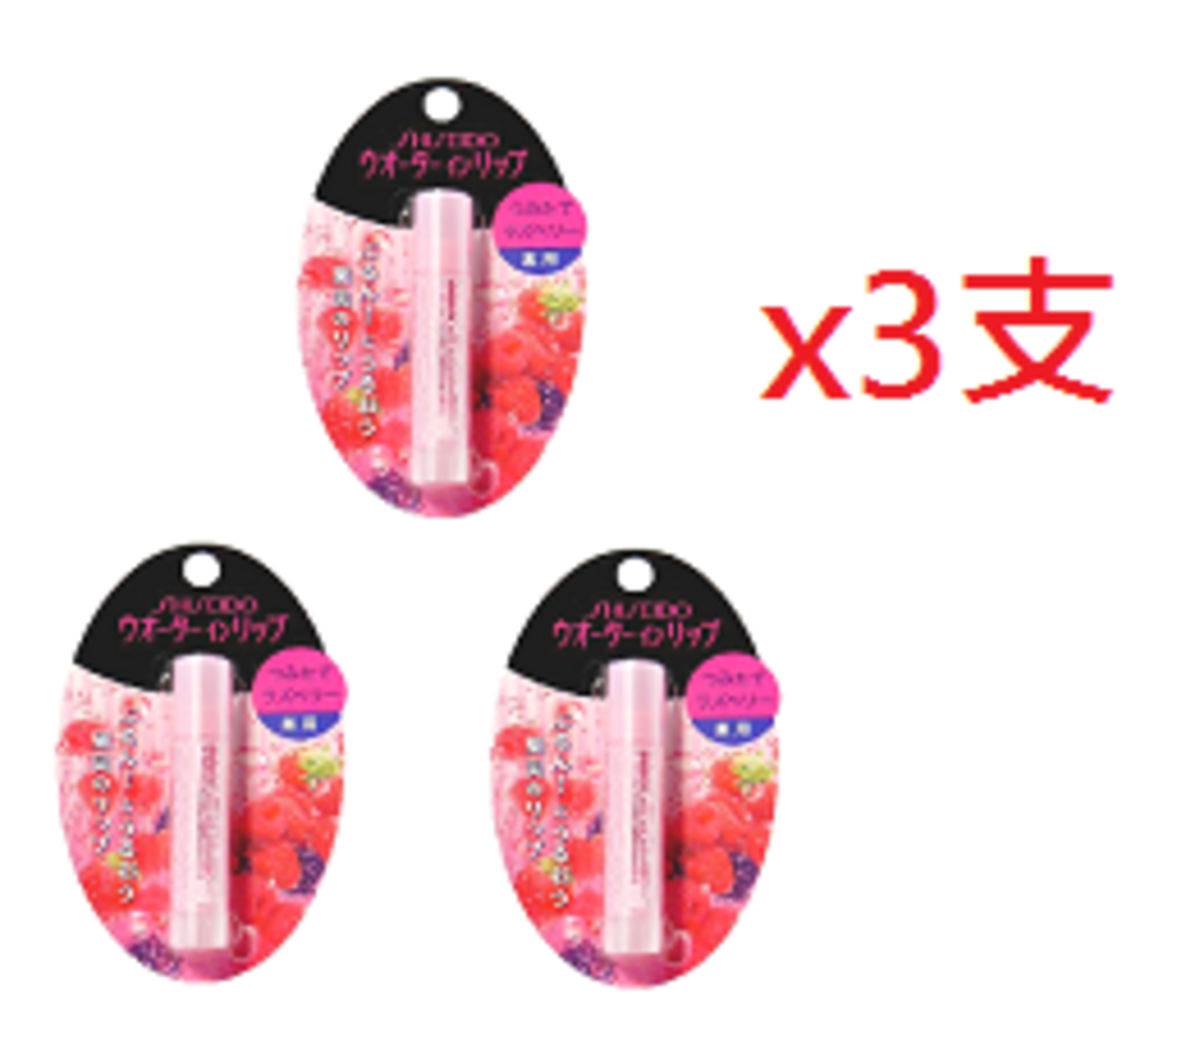 SHISEIDO WATER IN LIP - NATUTAL CARE (Raspberry) 3.5gx 3 pcs